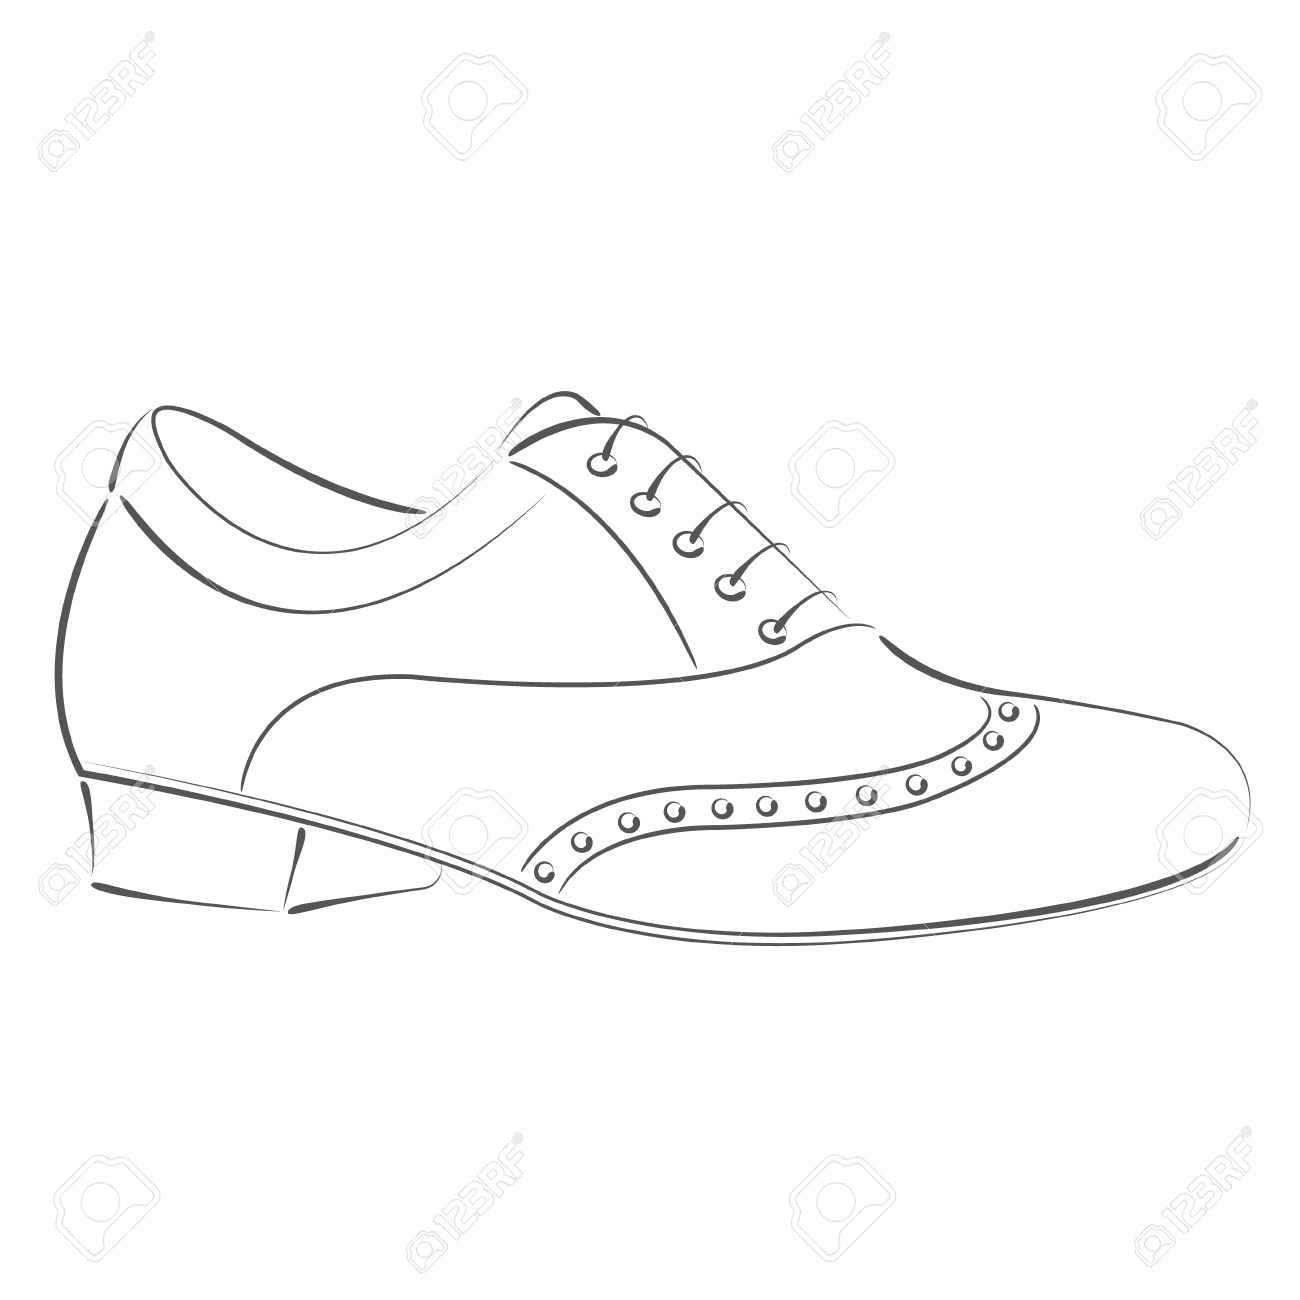 Amazing template shoes illustration example resume ideas shoe drawing template at getdrawings free for personal use maxwellsz